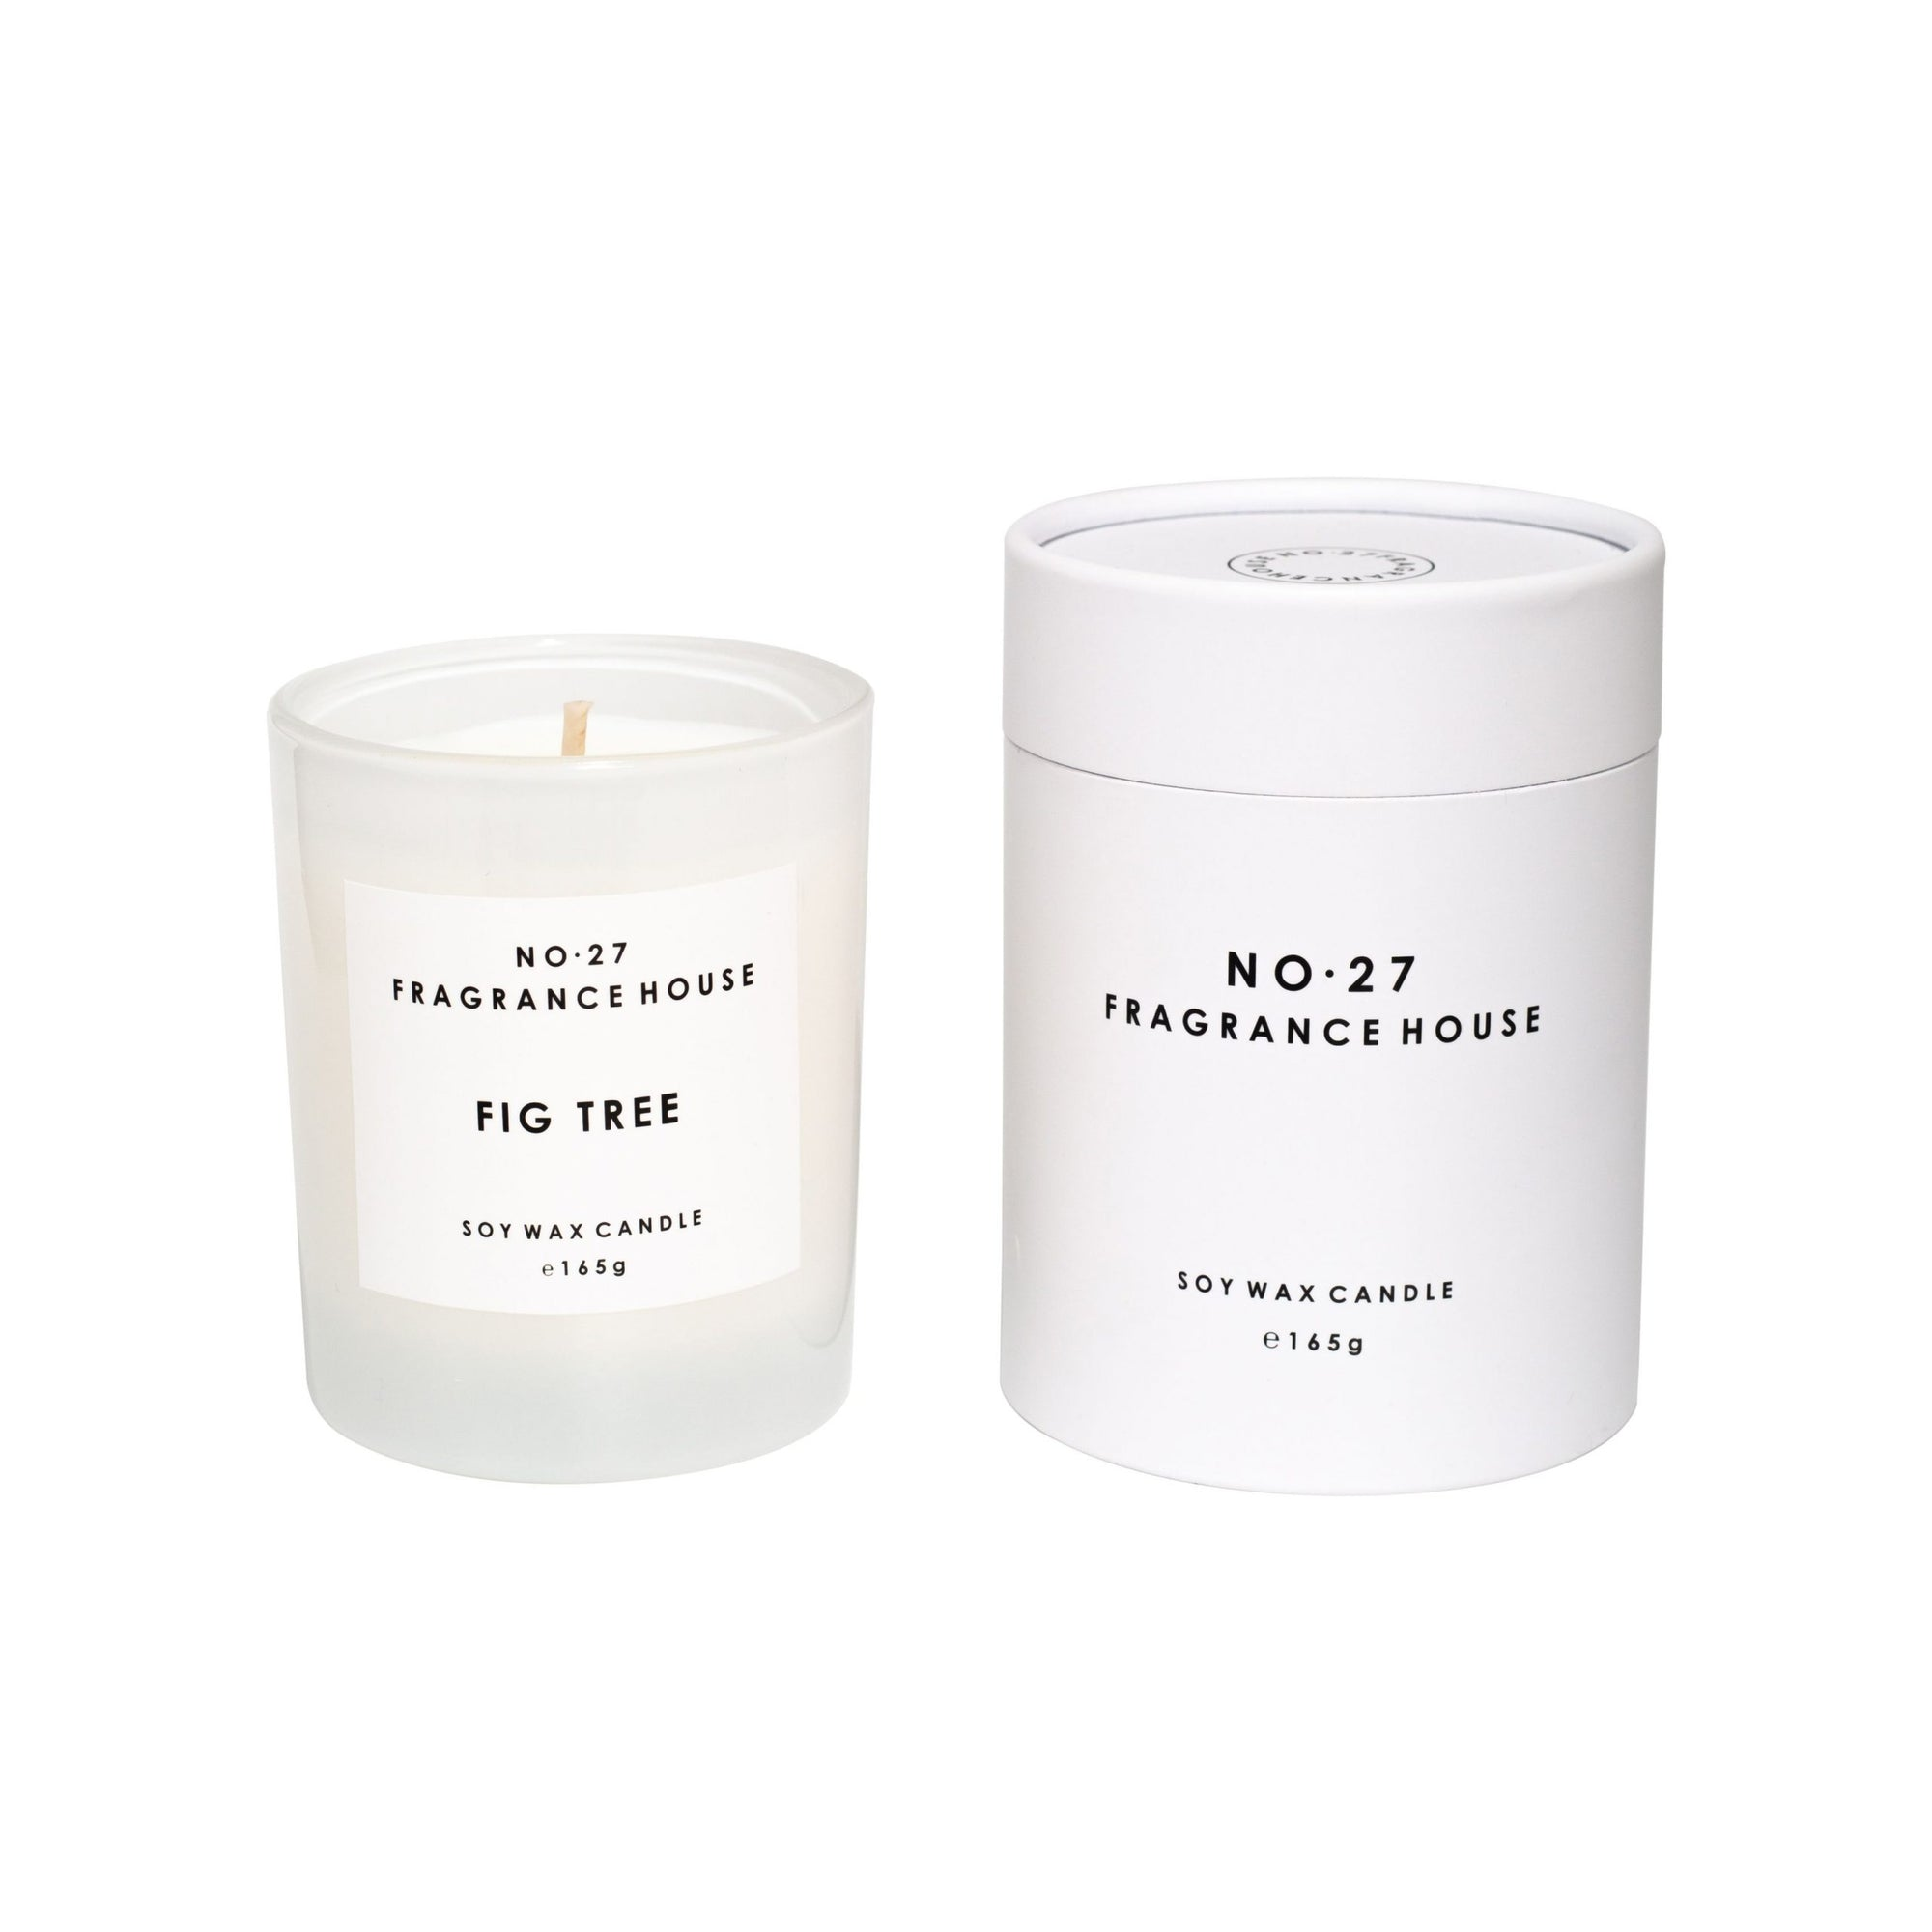 No.27 Fragrance House Fig Tree Candle